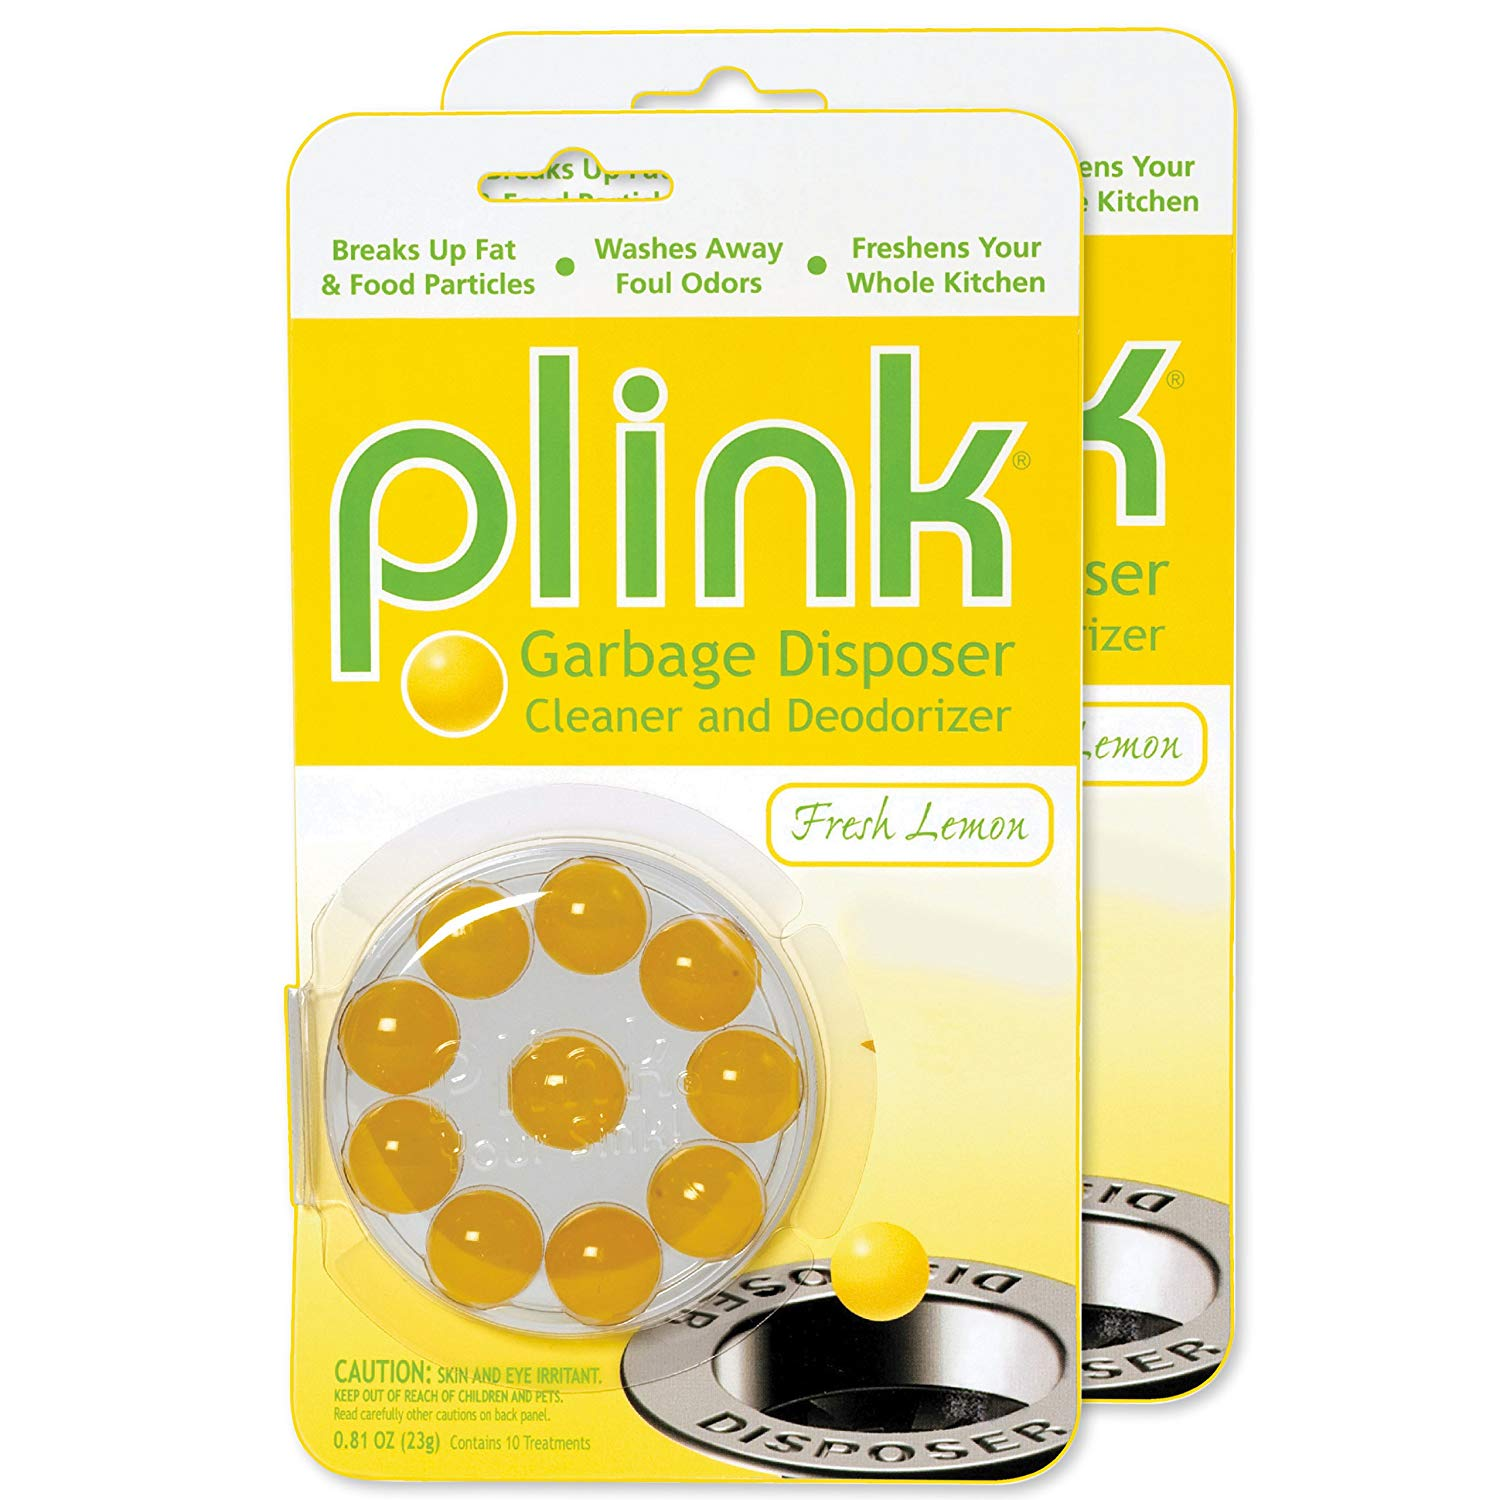 Garbage Disposal Cleaner and Deodorizer, Original Fresh Lemon Scent, Value 2-Pack for 20 Cleanings, Plink balls clean and deodorize kitchen sink disposal By Plink